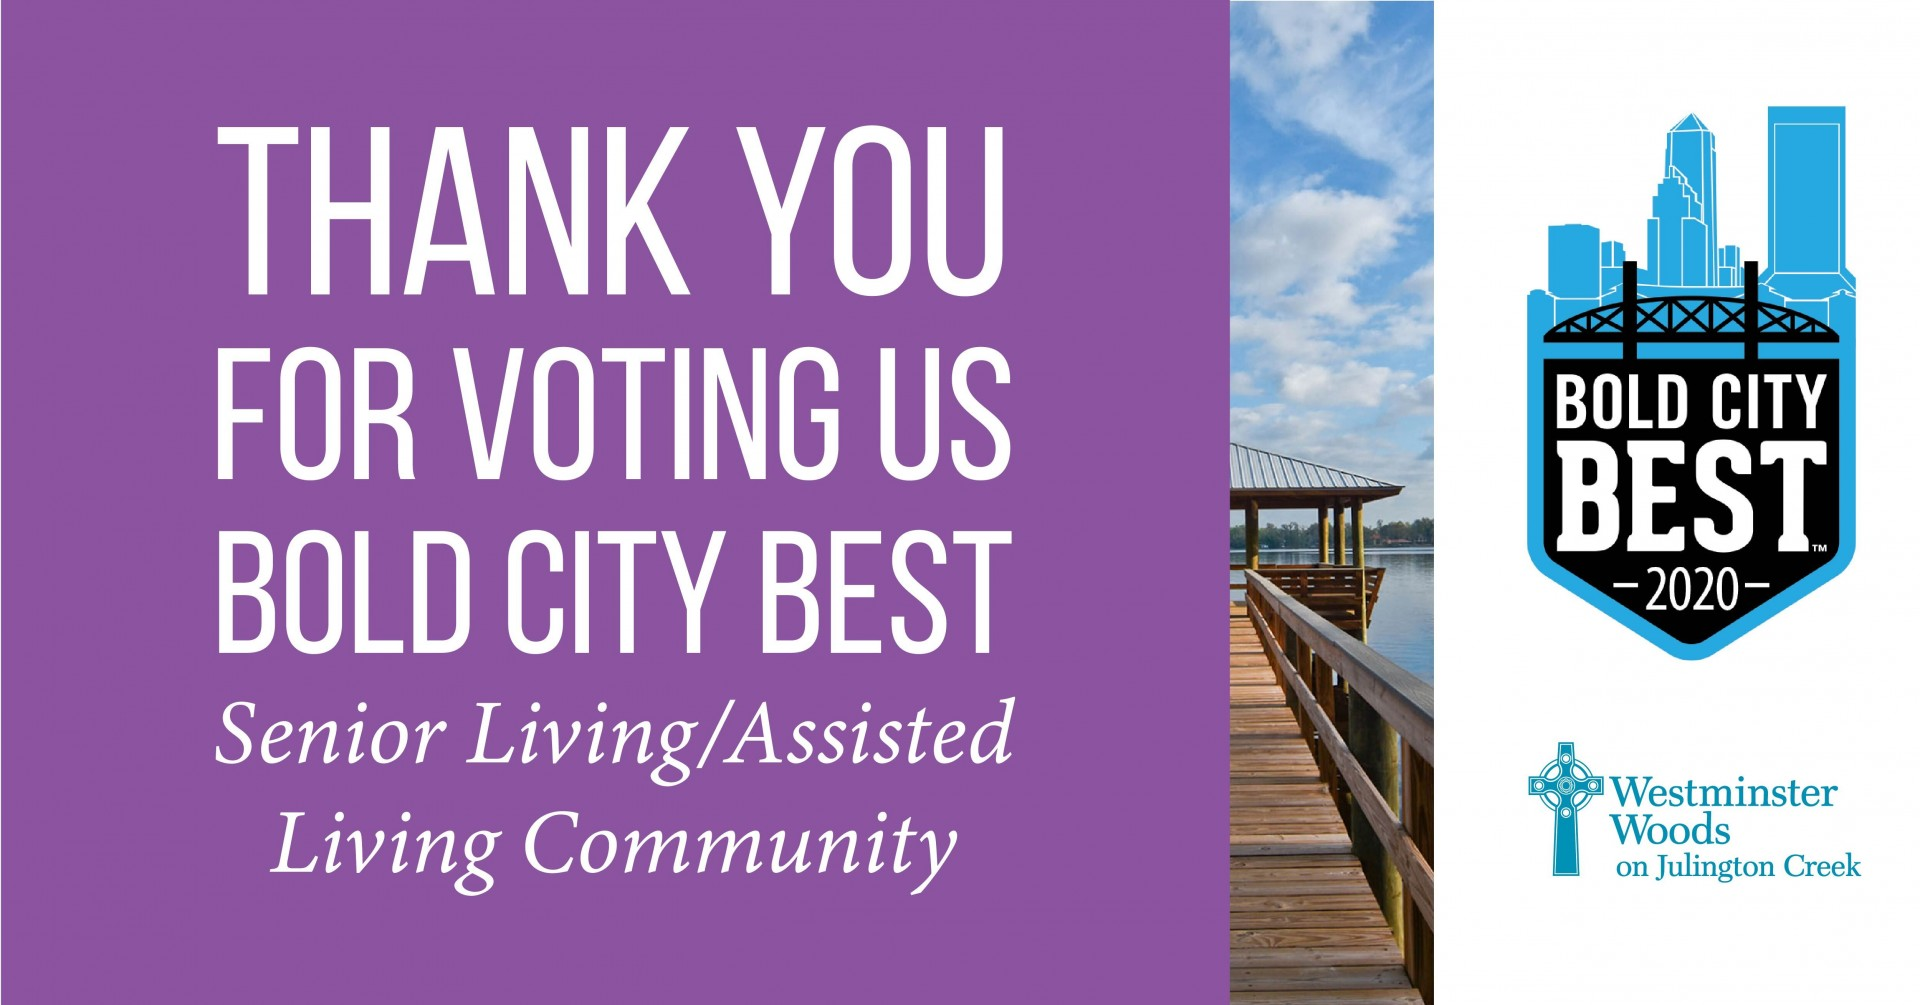 Westminster Woods on Julington Creek Named Bold City Best Senior Living/Assisted Living Community